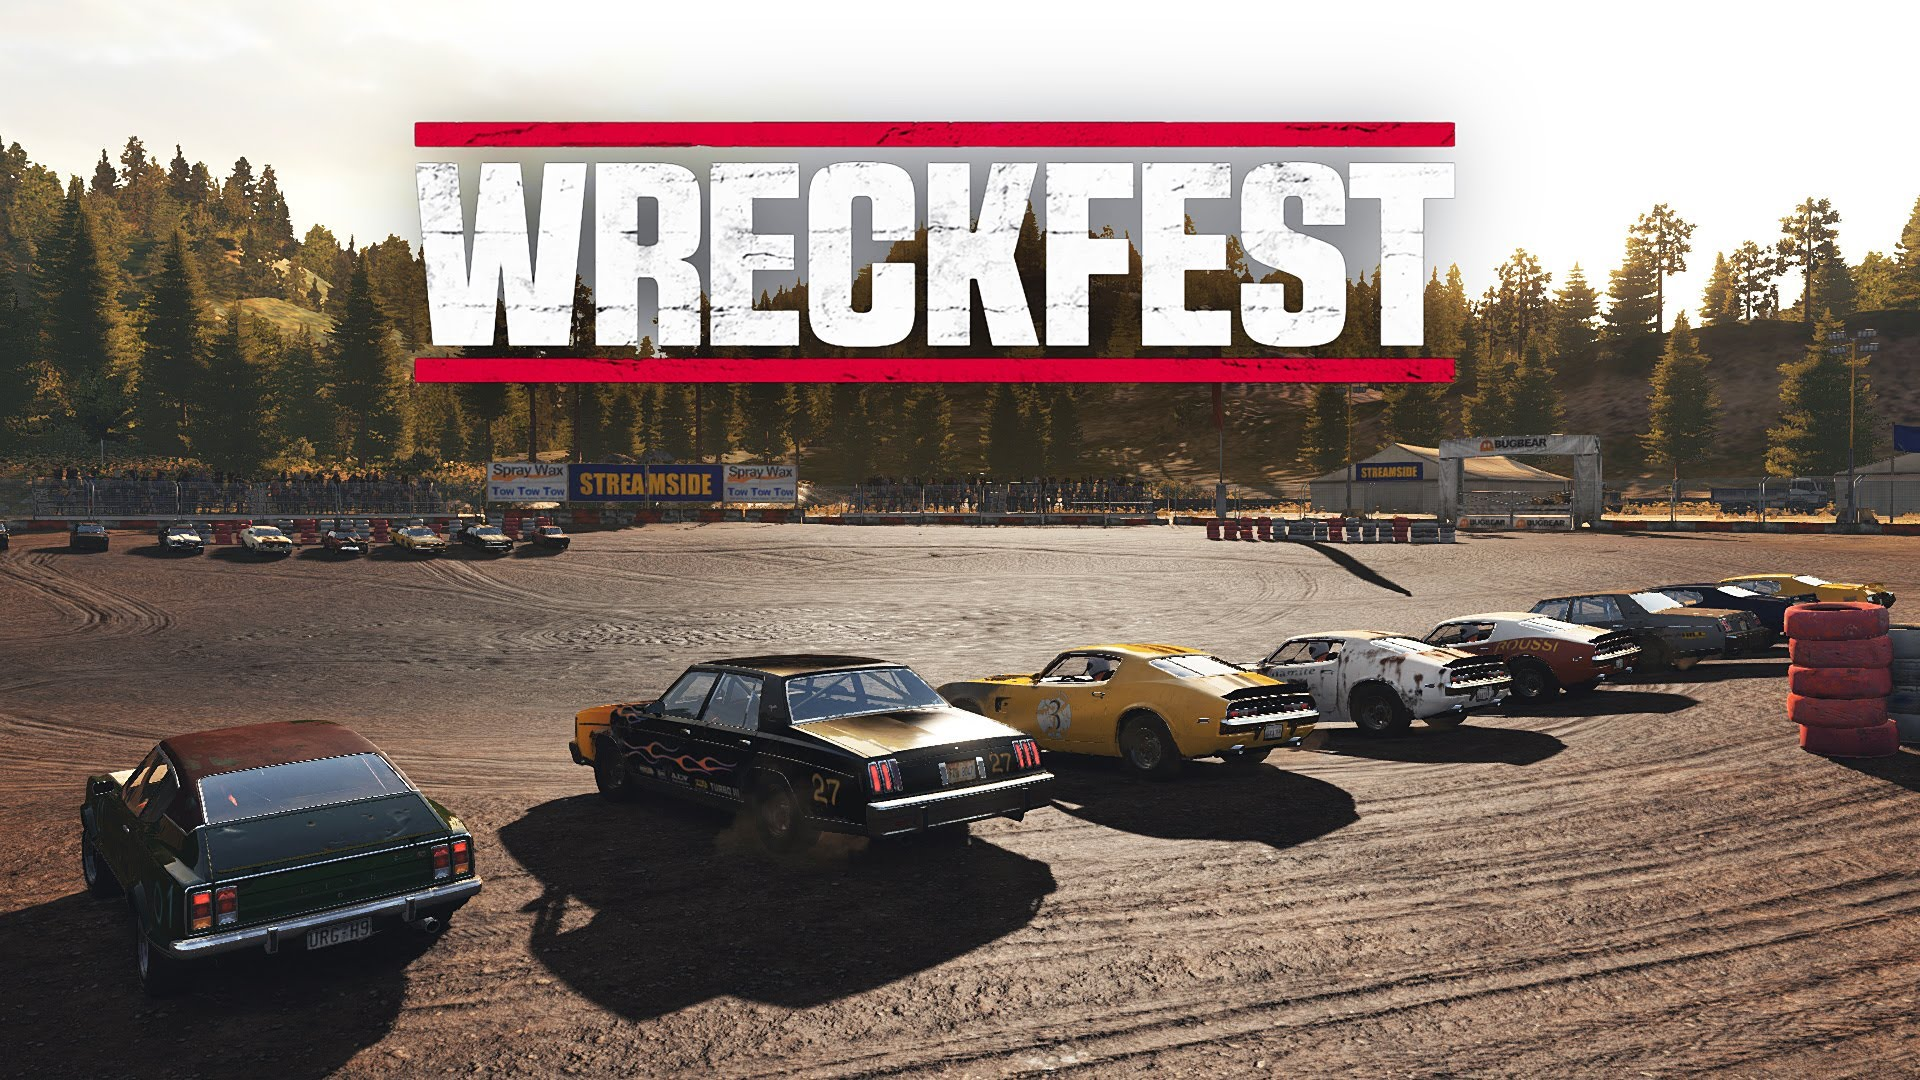 Bugbear Announced Derby Racing Game Wreckfest Is Headed to Xbox One and PS4